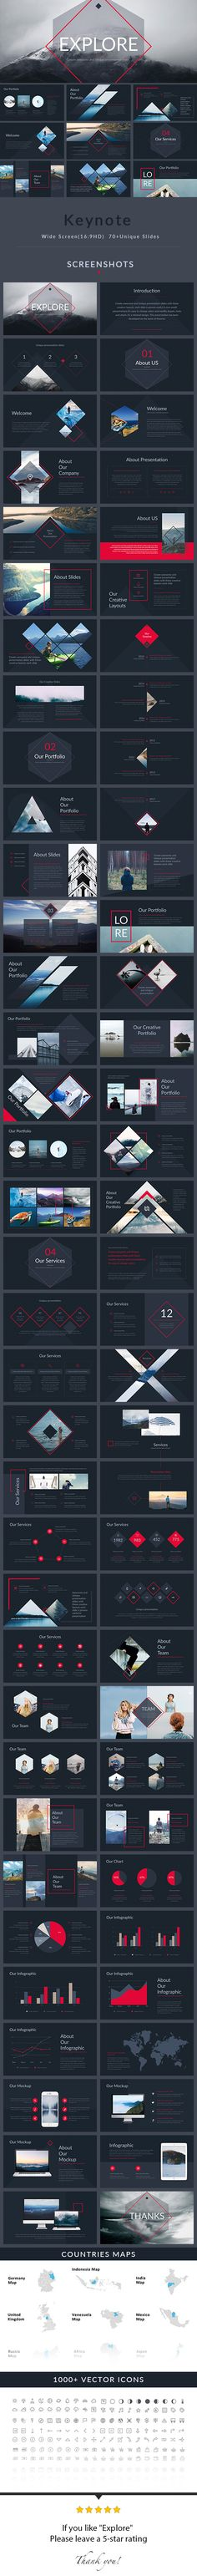 20 powerpoint templates you can use for free work pinterest explore powerpoint presentation template by general description screen size 70 unique slides master slides free font used transition animation creative toneelgroepblik Image collections